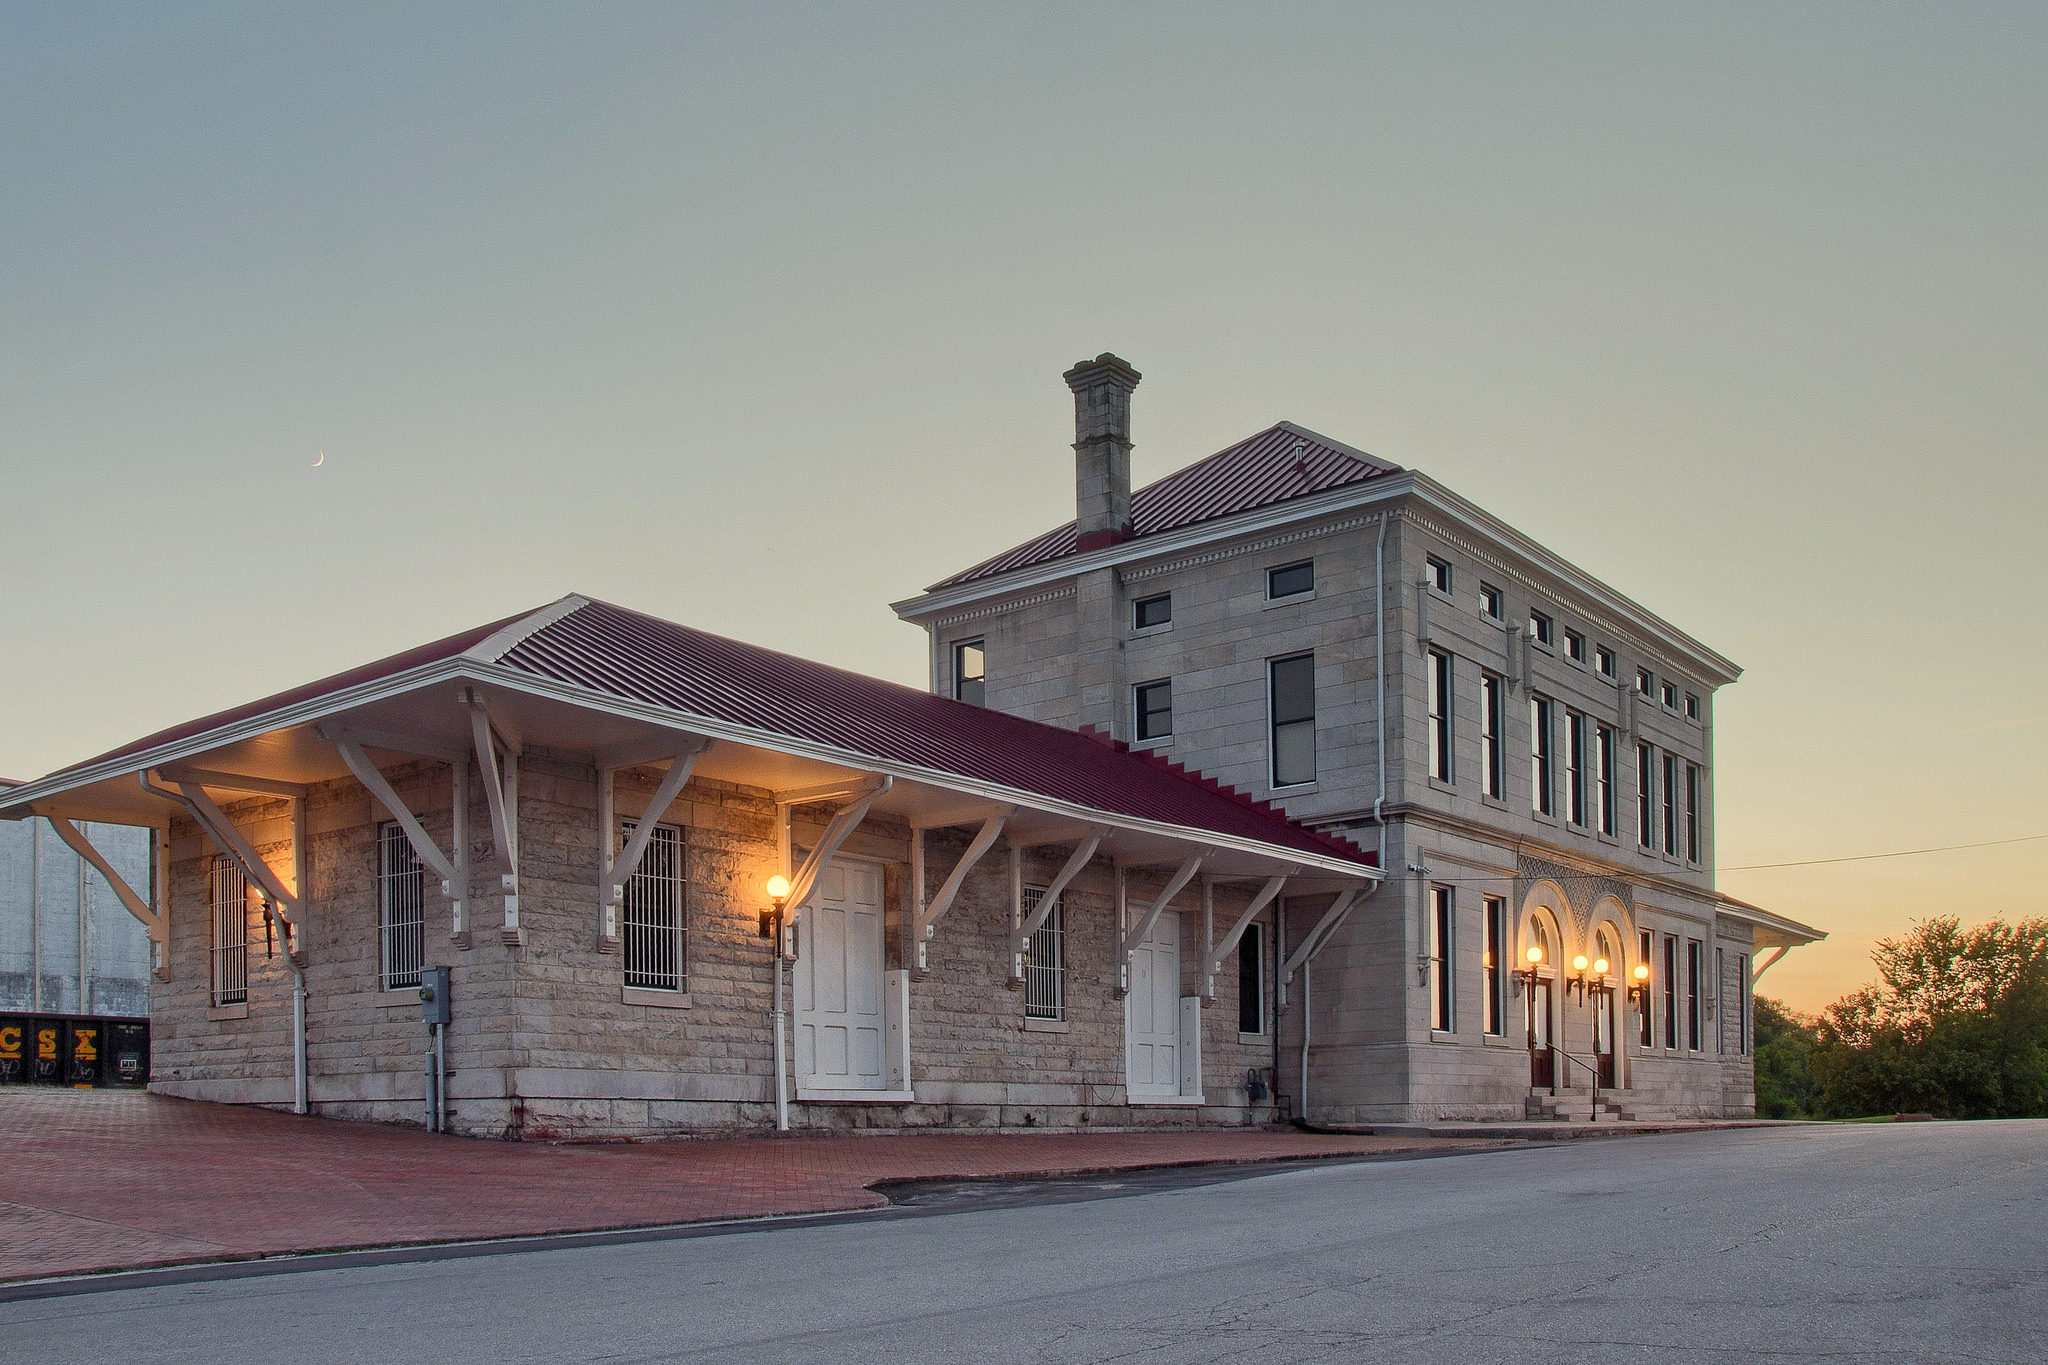 Old Train Depot - Columbia, Tennessee - Olympus E520 / 14-54mm f2.8-3.5 / 6 Frames / SNS HDR / Shift N Lens Correction